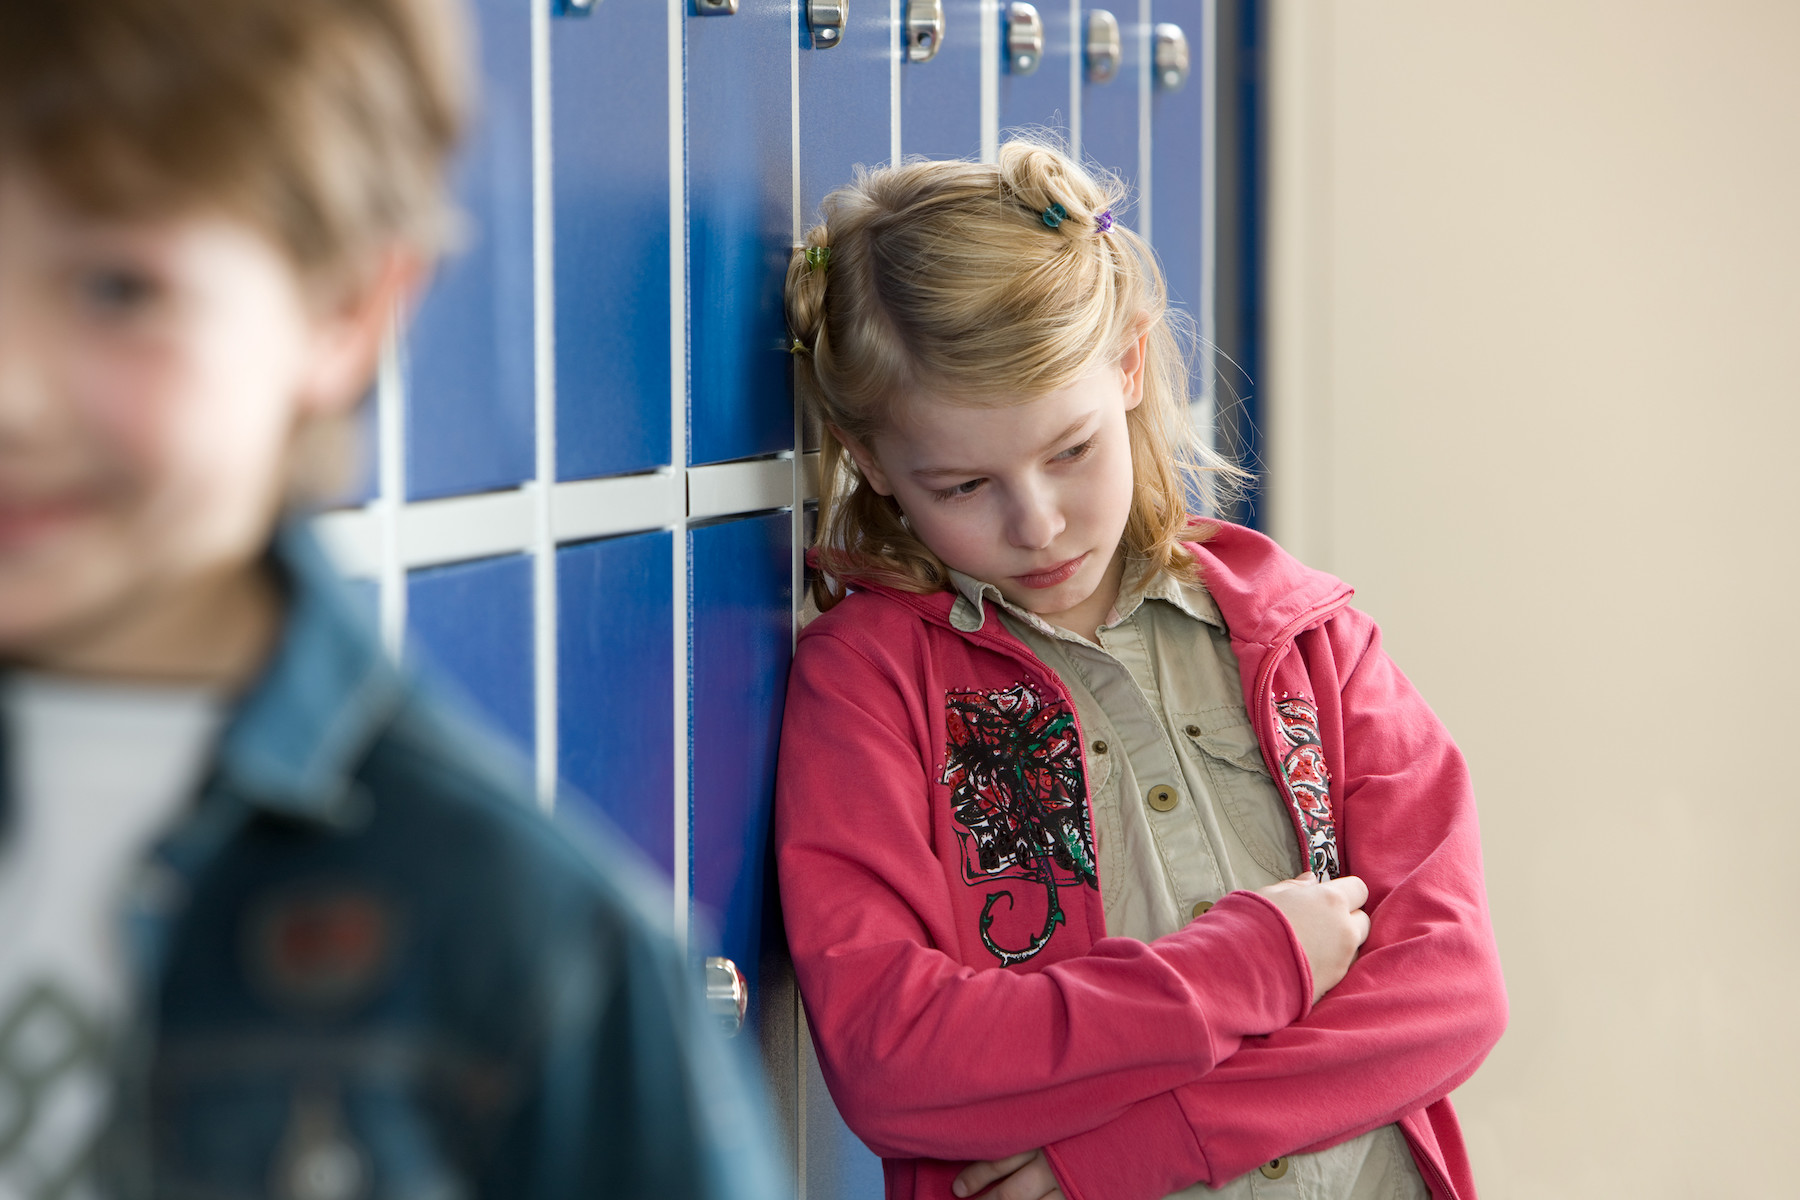 Girl in pink jacket leaning against locker